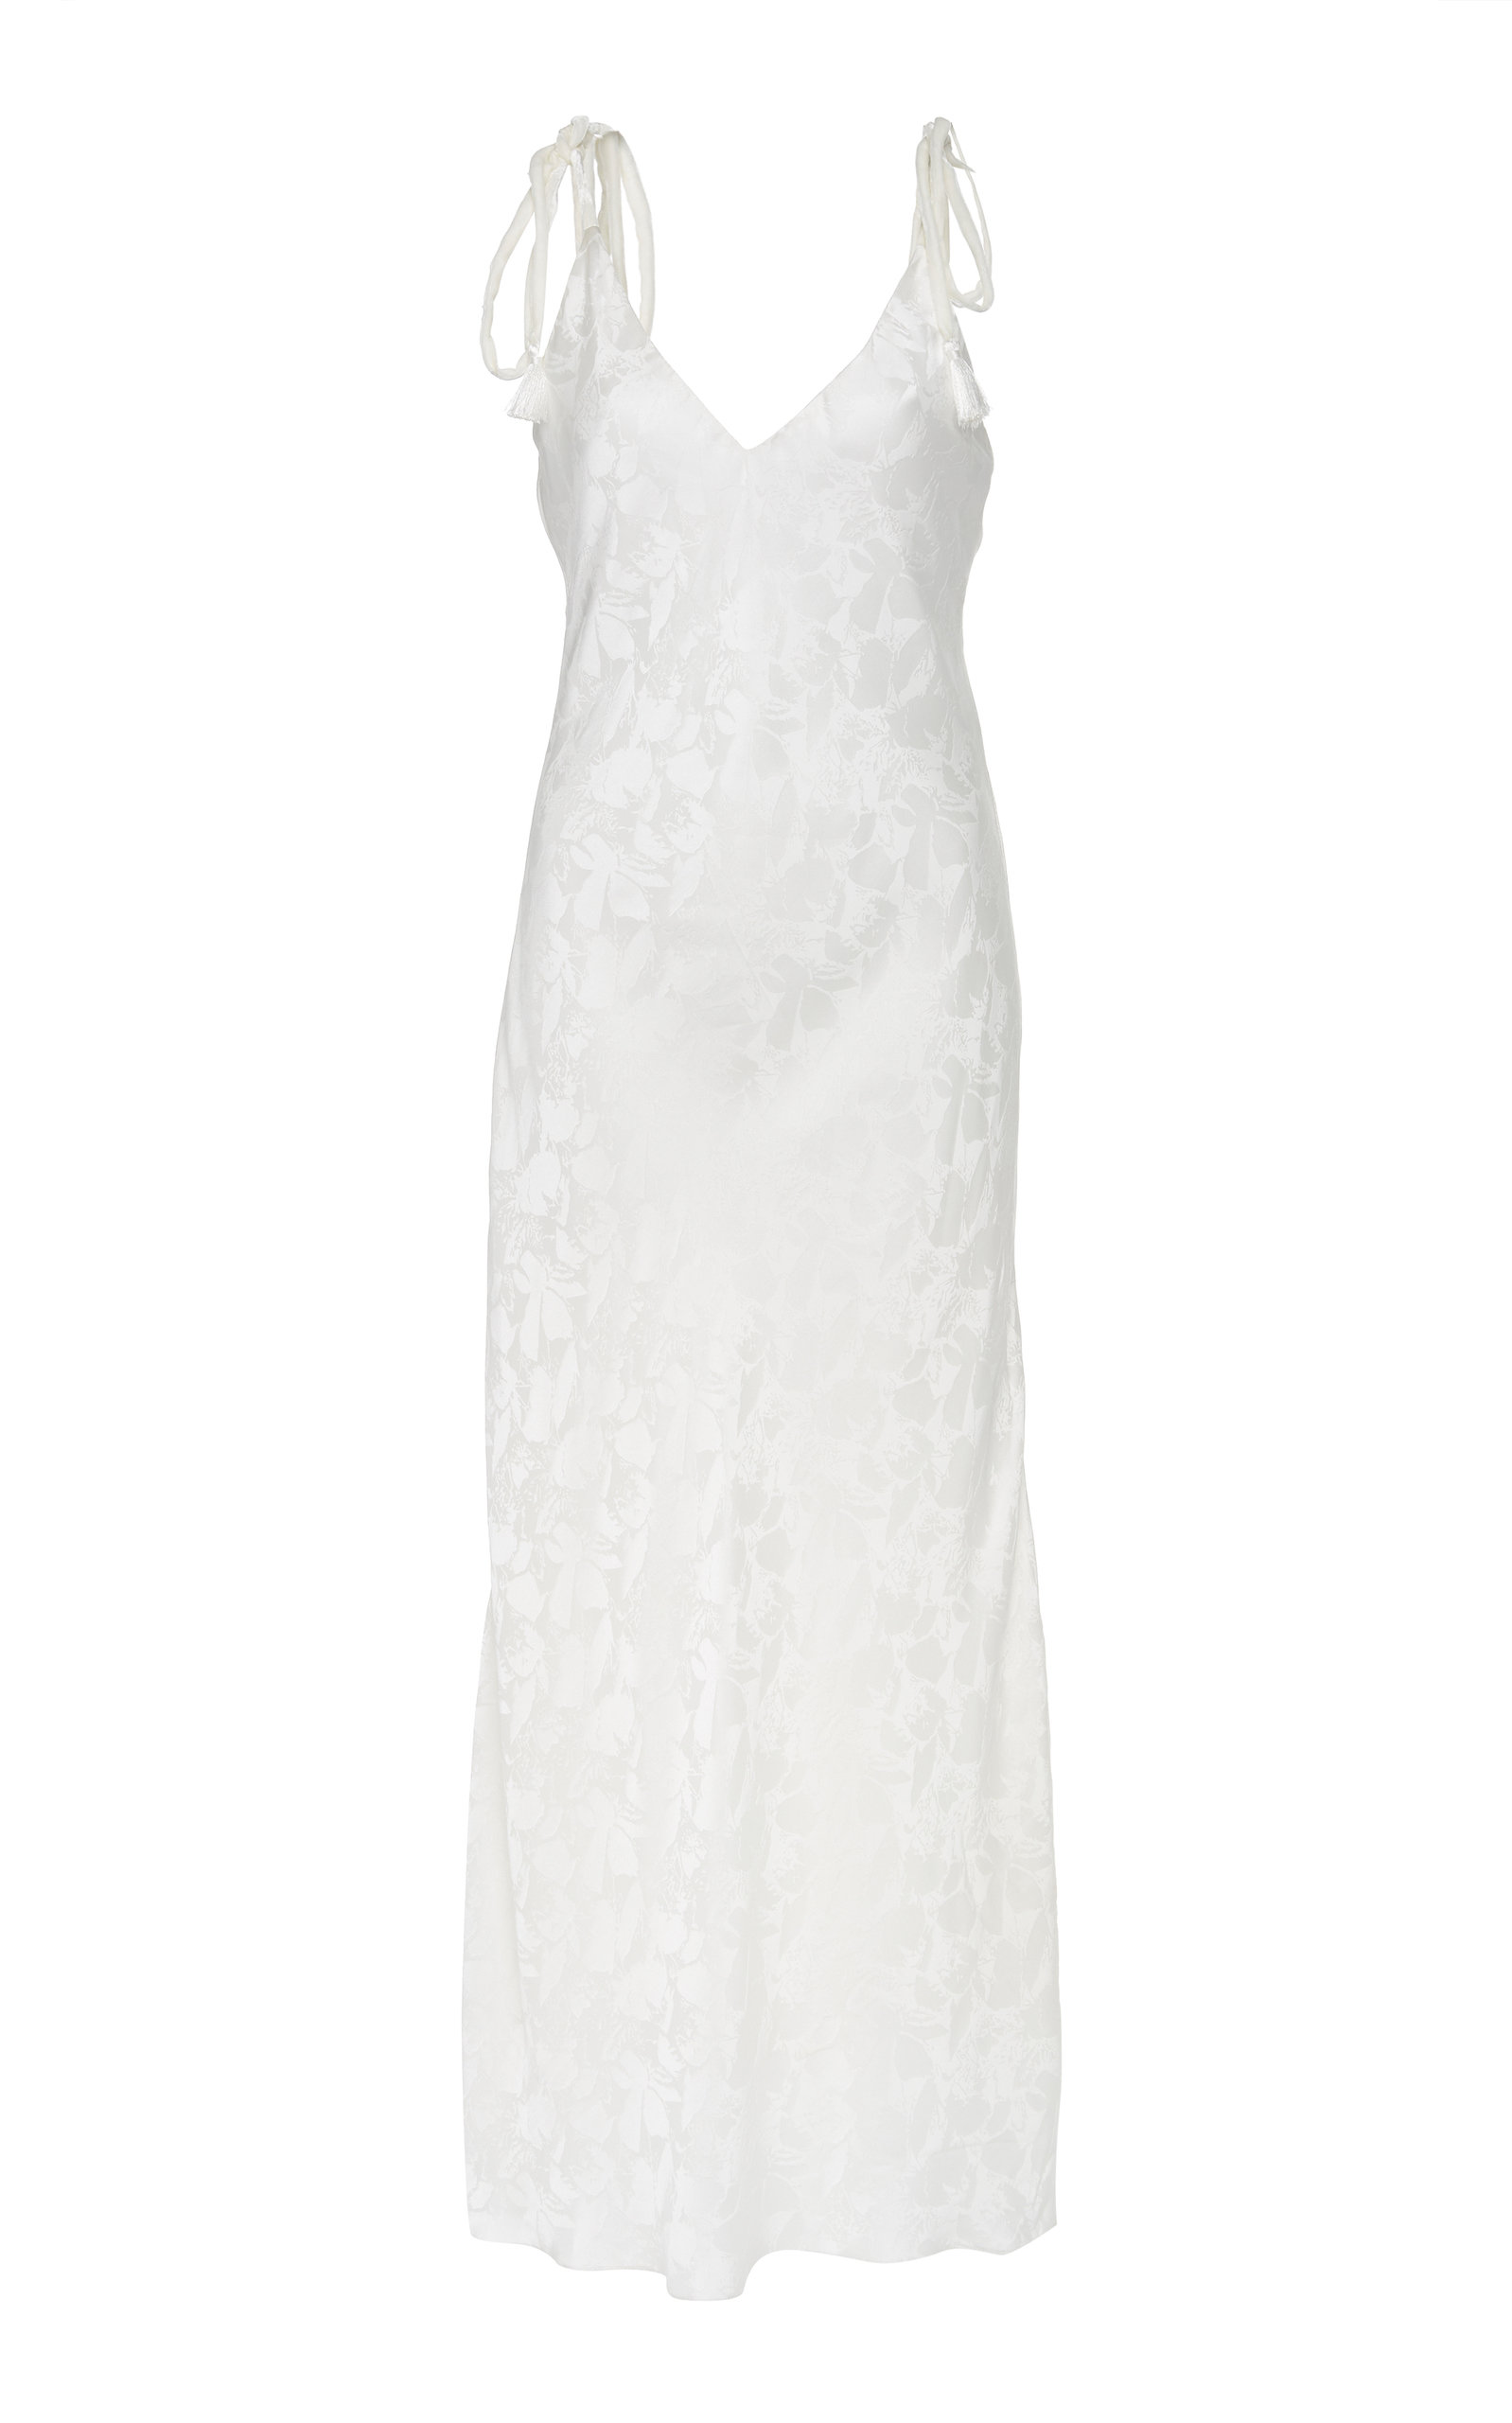 MAREI 1998 Ixia Maxi Long Cami Dress With Velvet Straps in White